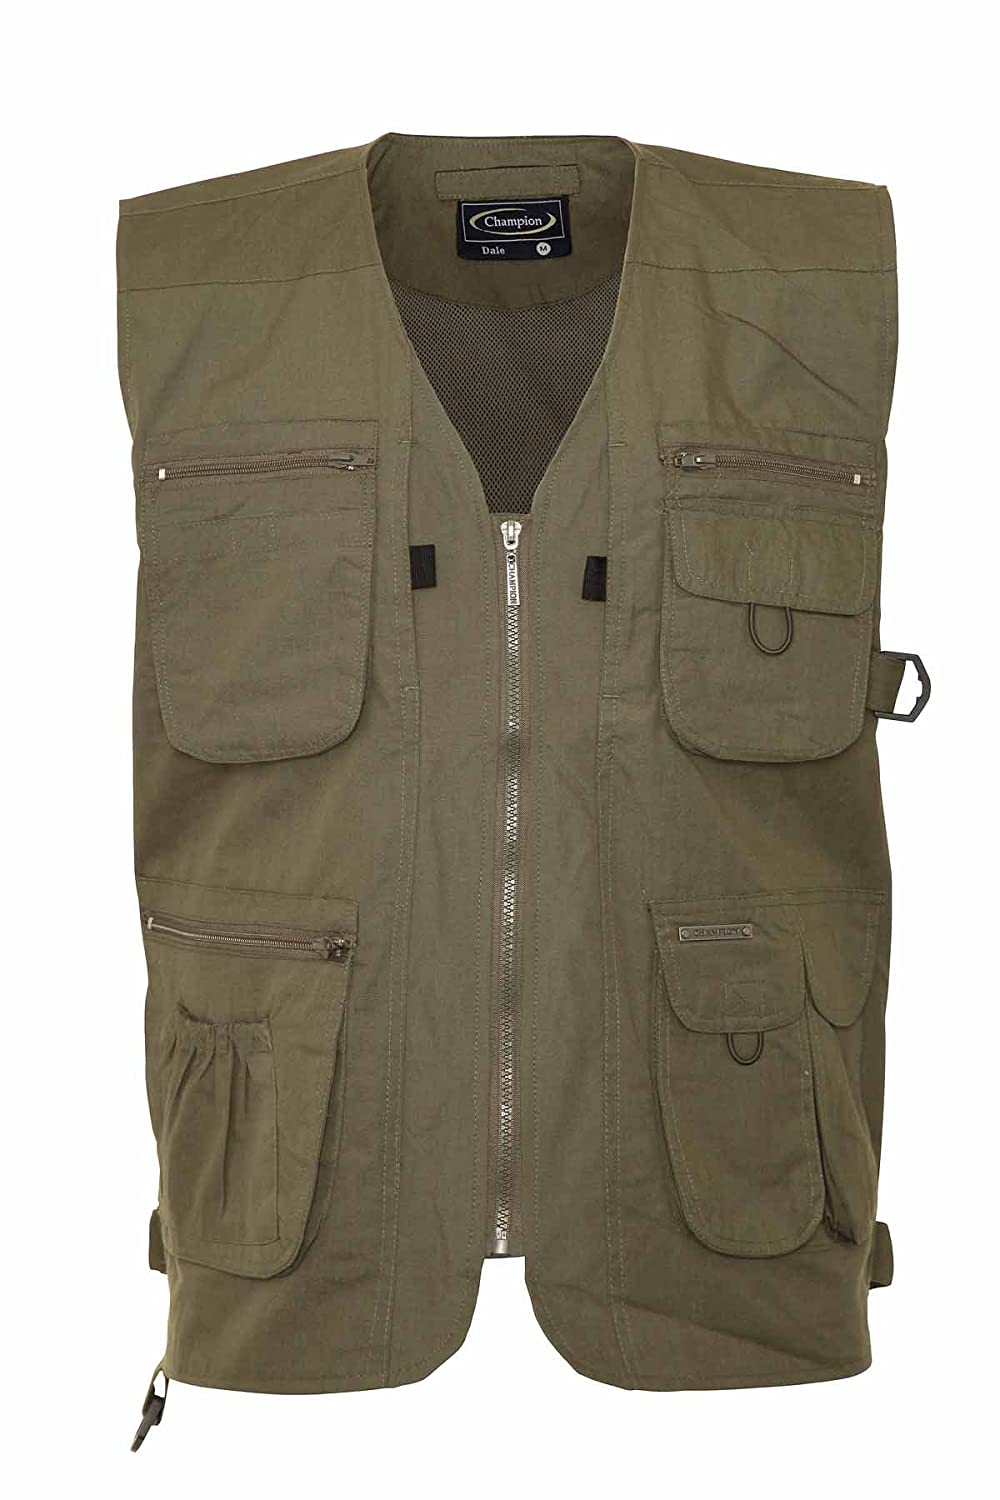 Mens Champion Dale Country Clothing Polycotton BodyWarmer Gilet Outerwear MCOAT-CHAMPION-2495